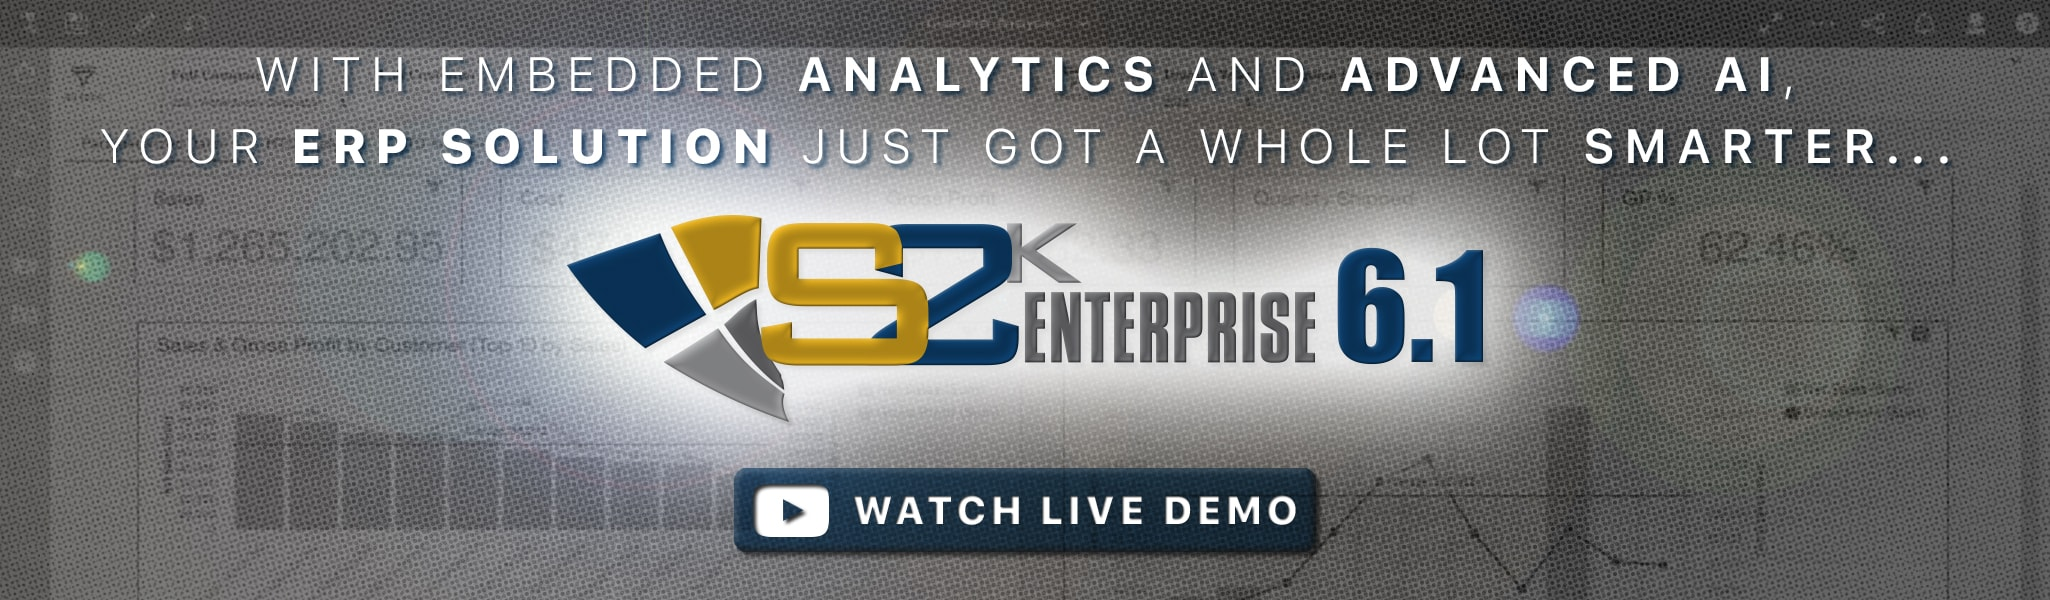 With Embedded Analytics and Advanced AI, Your ERP solution just got a whole lot smarter... S2K Enterprise 6.1